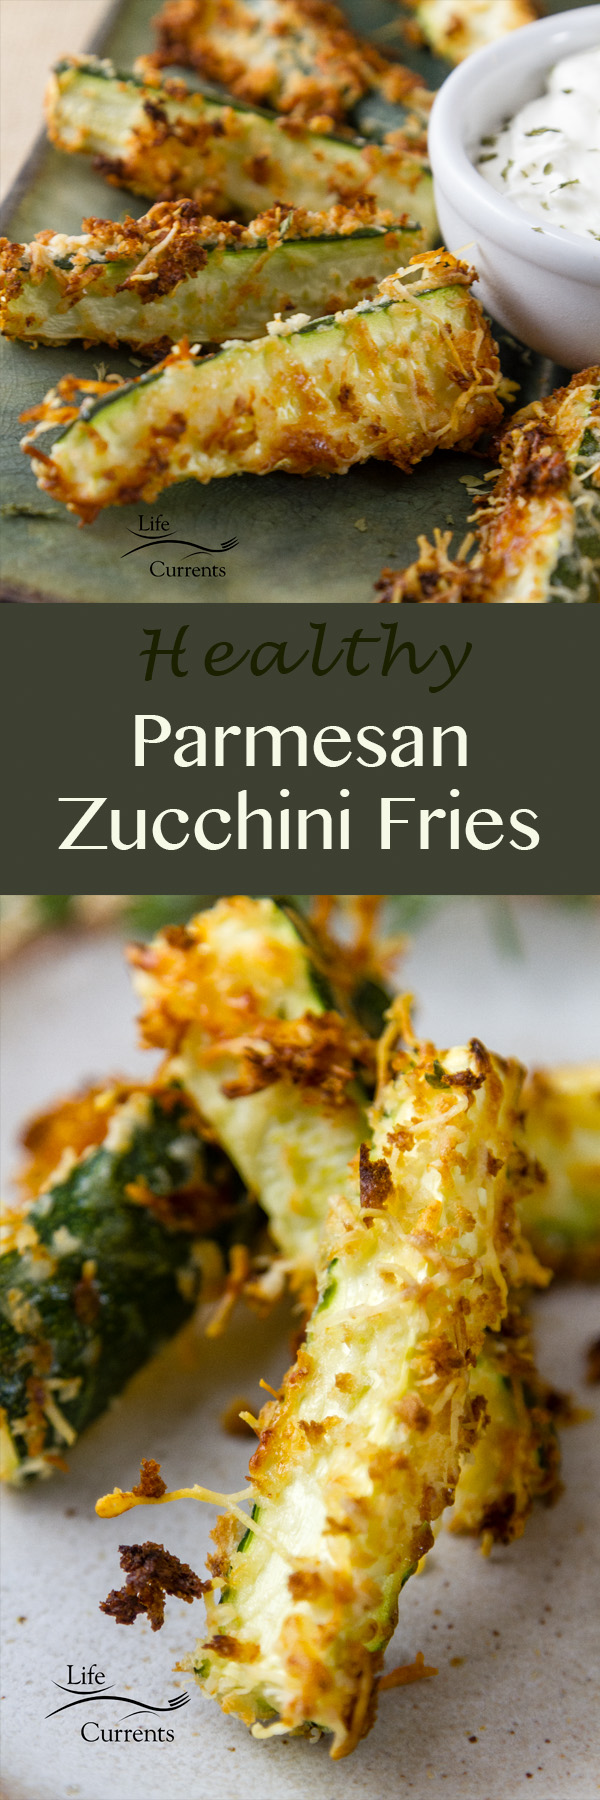 These healthy baked zucchini fries are a nice option for tailgating snacks month.